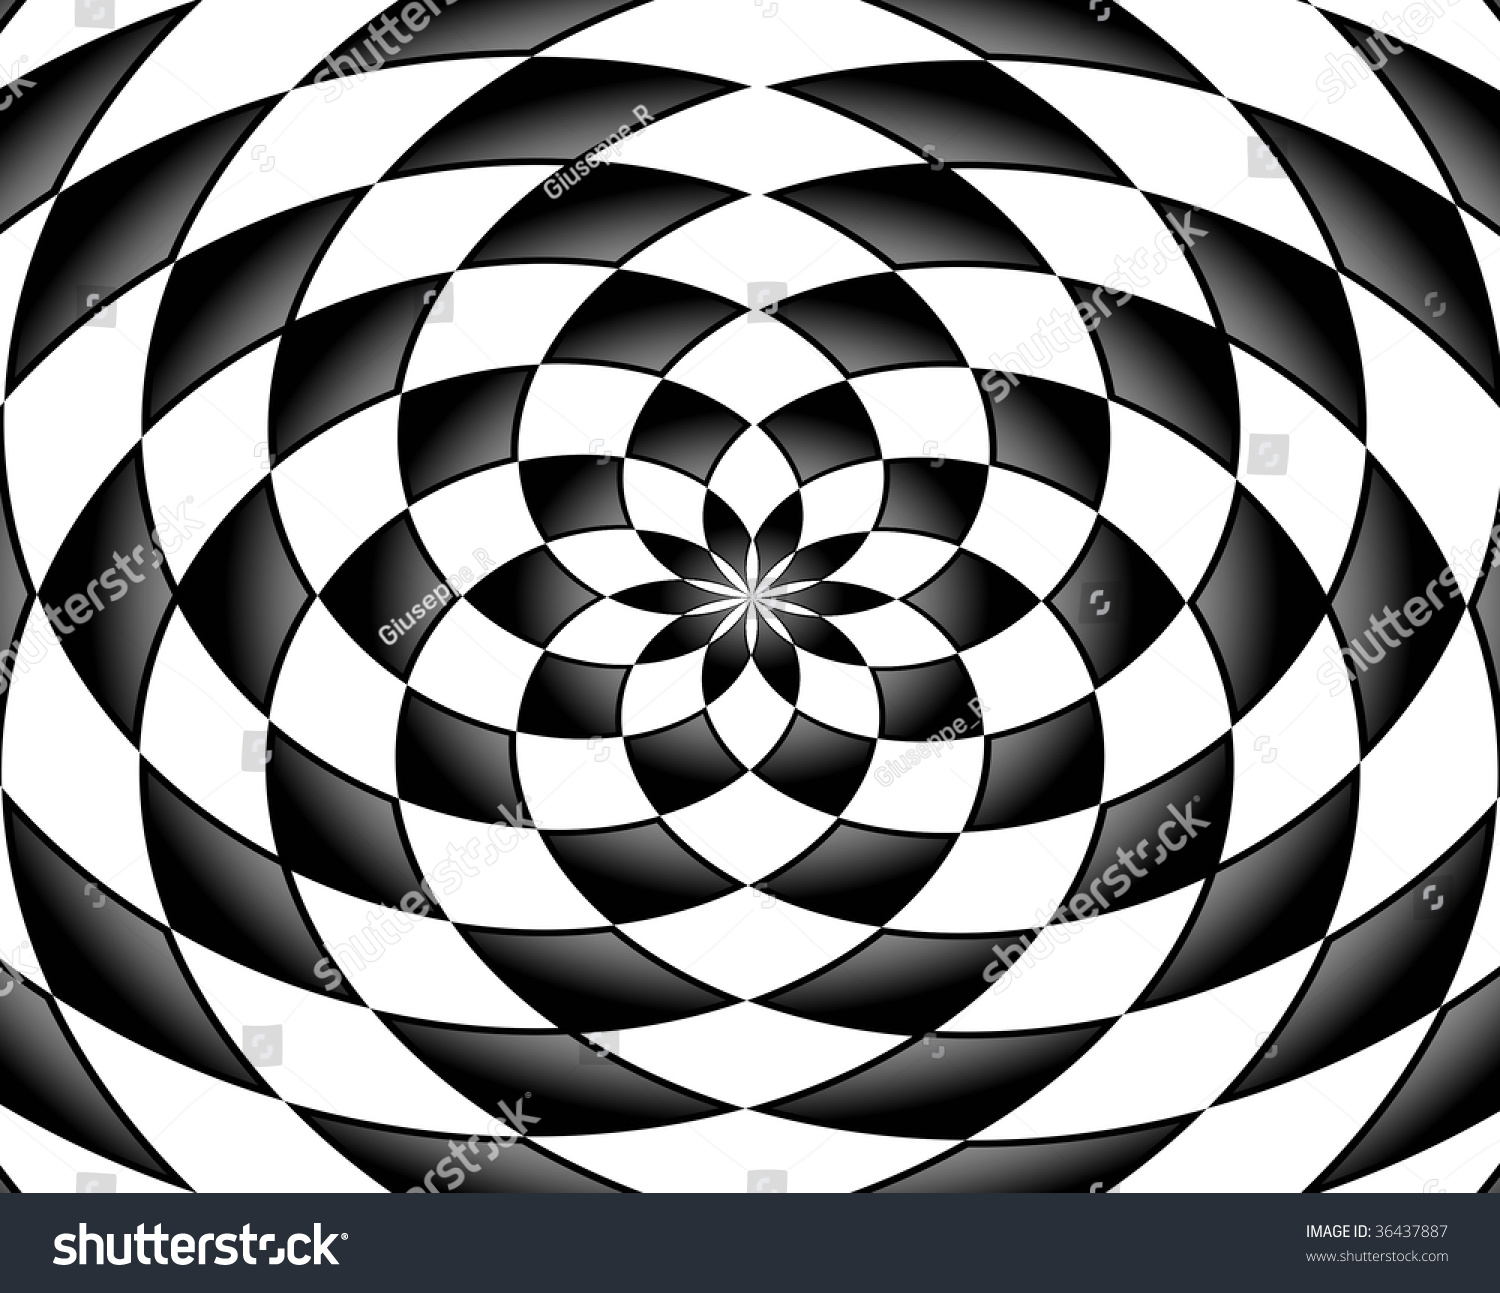 black and white abstract shapes round effect stock photo 36437887 shutterstock. Black Bedroom Furniture Sets. Home Design Ideas